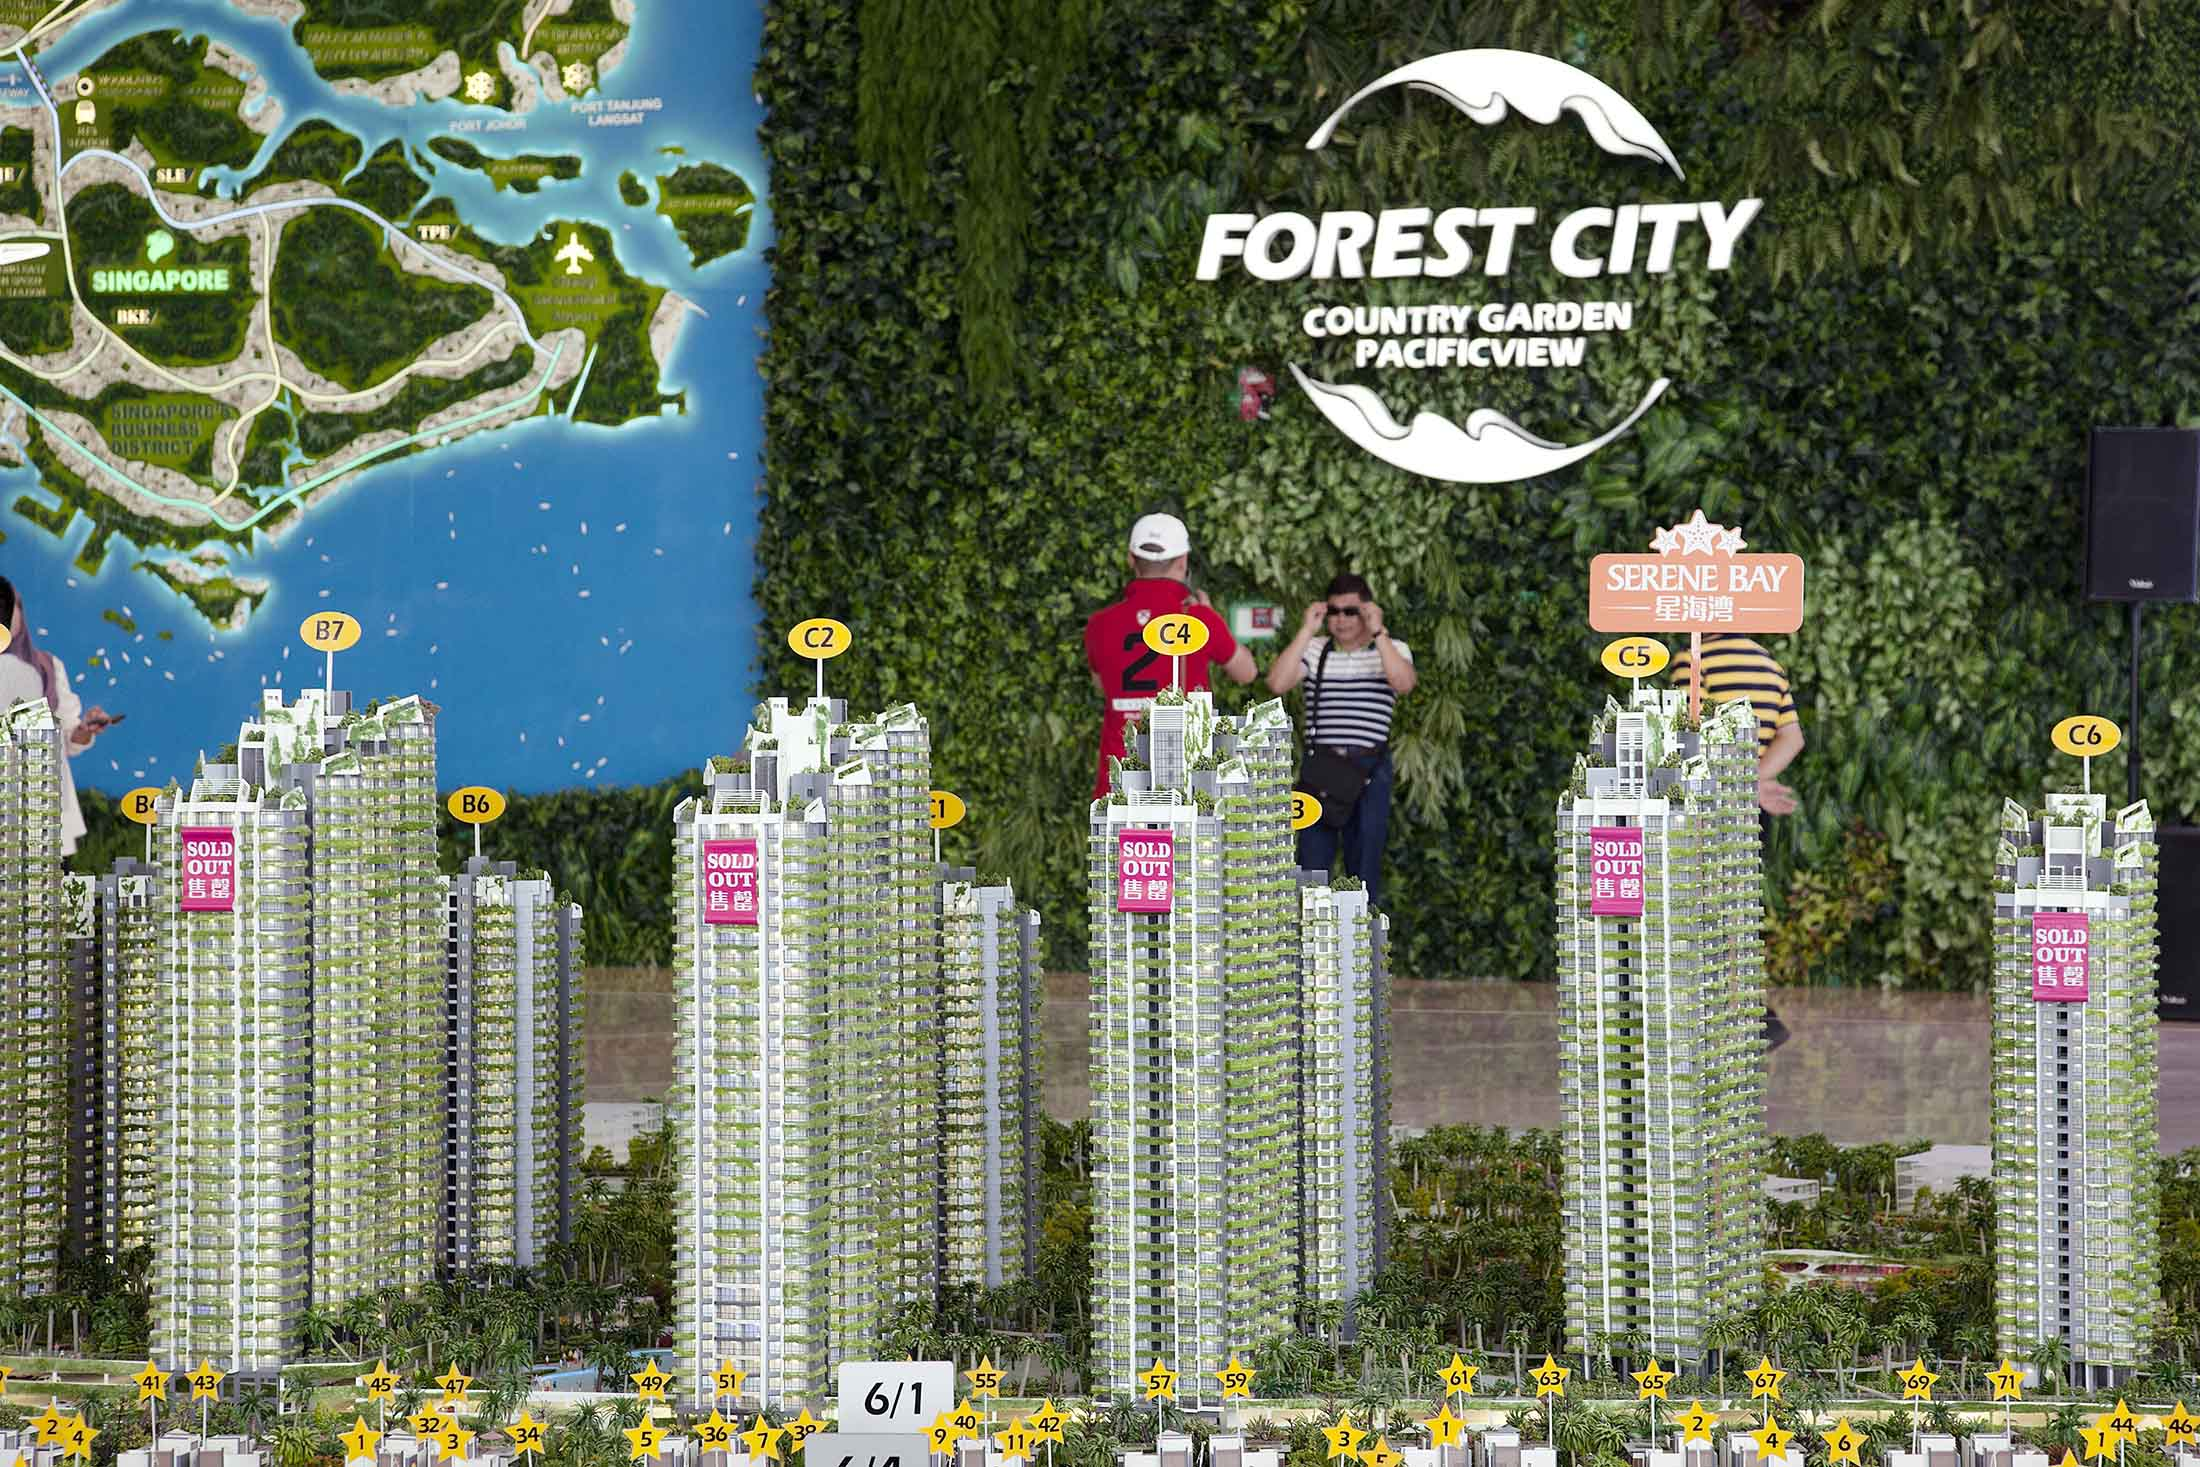 Scale models of Country Garden's Forest City project on displayin Johor Bahru, Malaysia.